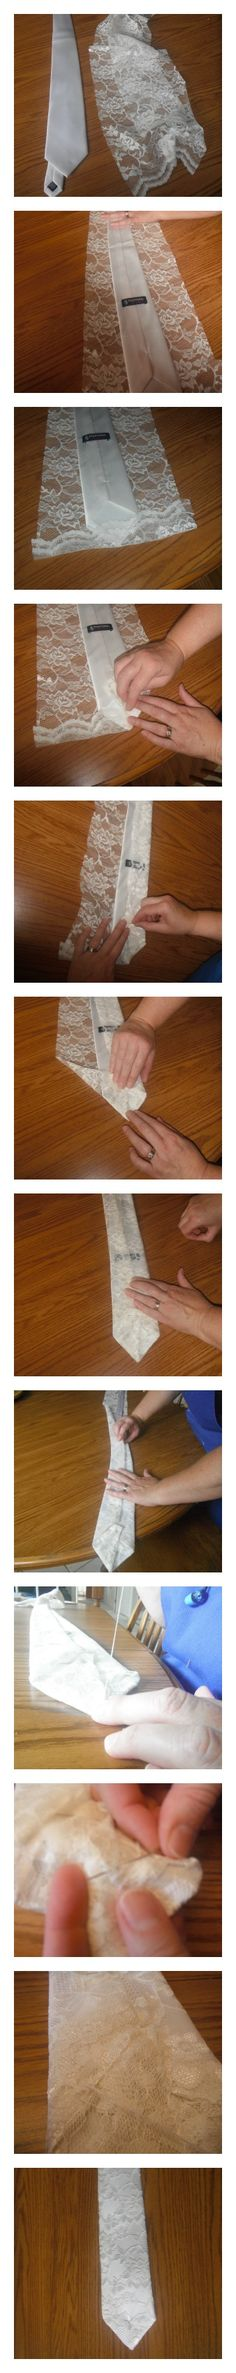 """This covered tie is specifically for weddings, but you can use it for other events. Since the wedding dress was altered the remaining lace was used for this project. First, lay the tie over top of the lace. It is okay if the lace doesn't cover the entire length of the tie, as long as it covers the part you will see. Then cut to a 1-1/2 inch on each side then fold and pin. After """"whip stitch"""" it closed catching some of the tie. Presto,you have a tie for the groom! @Amber Keeler #coveredtie"""